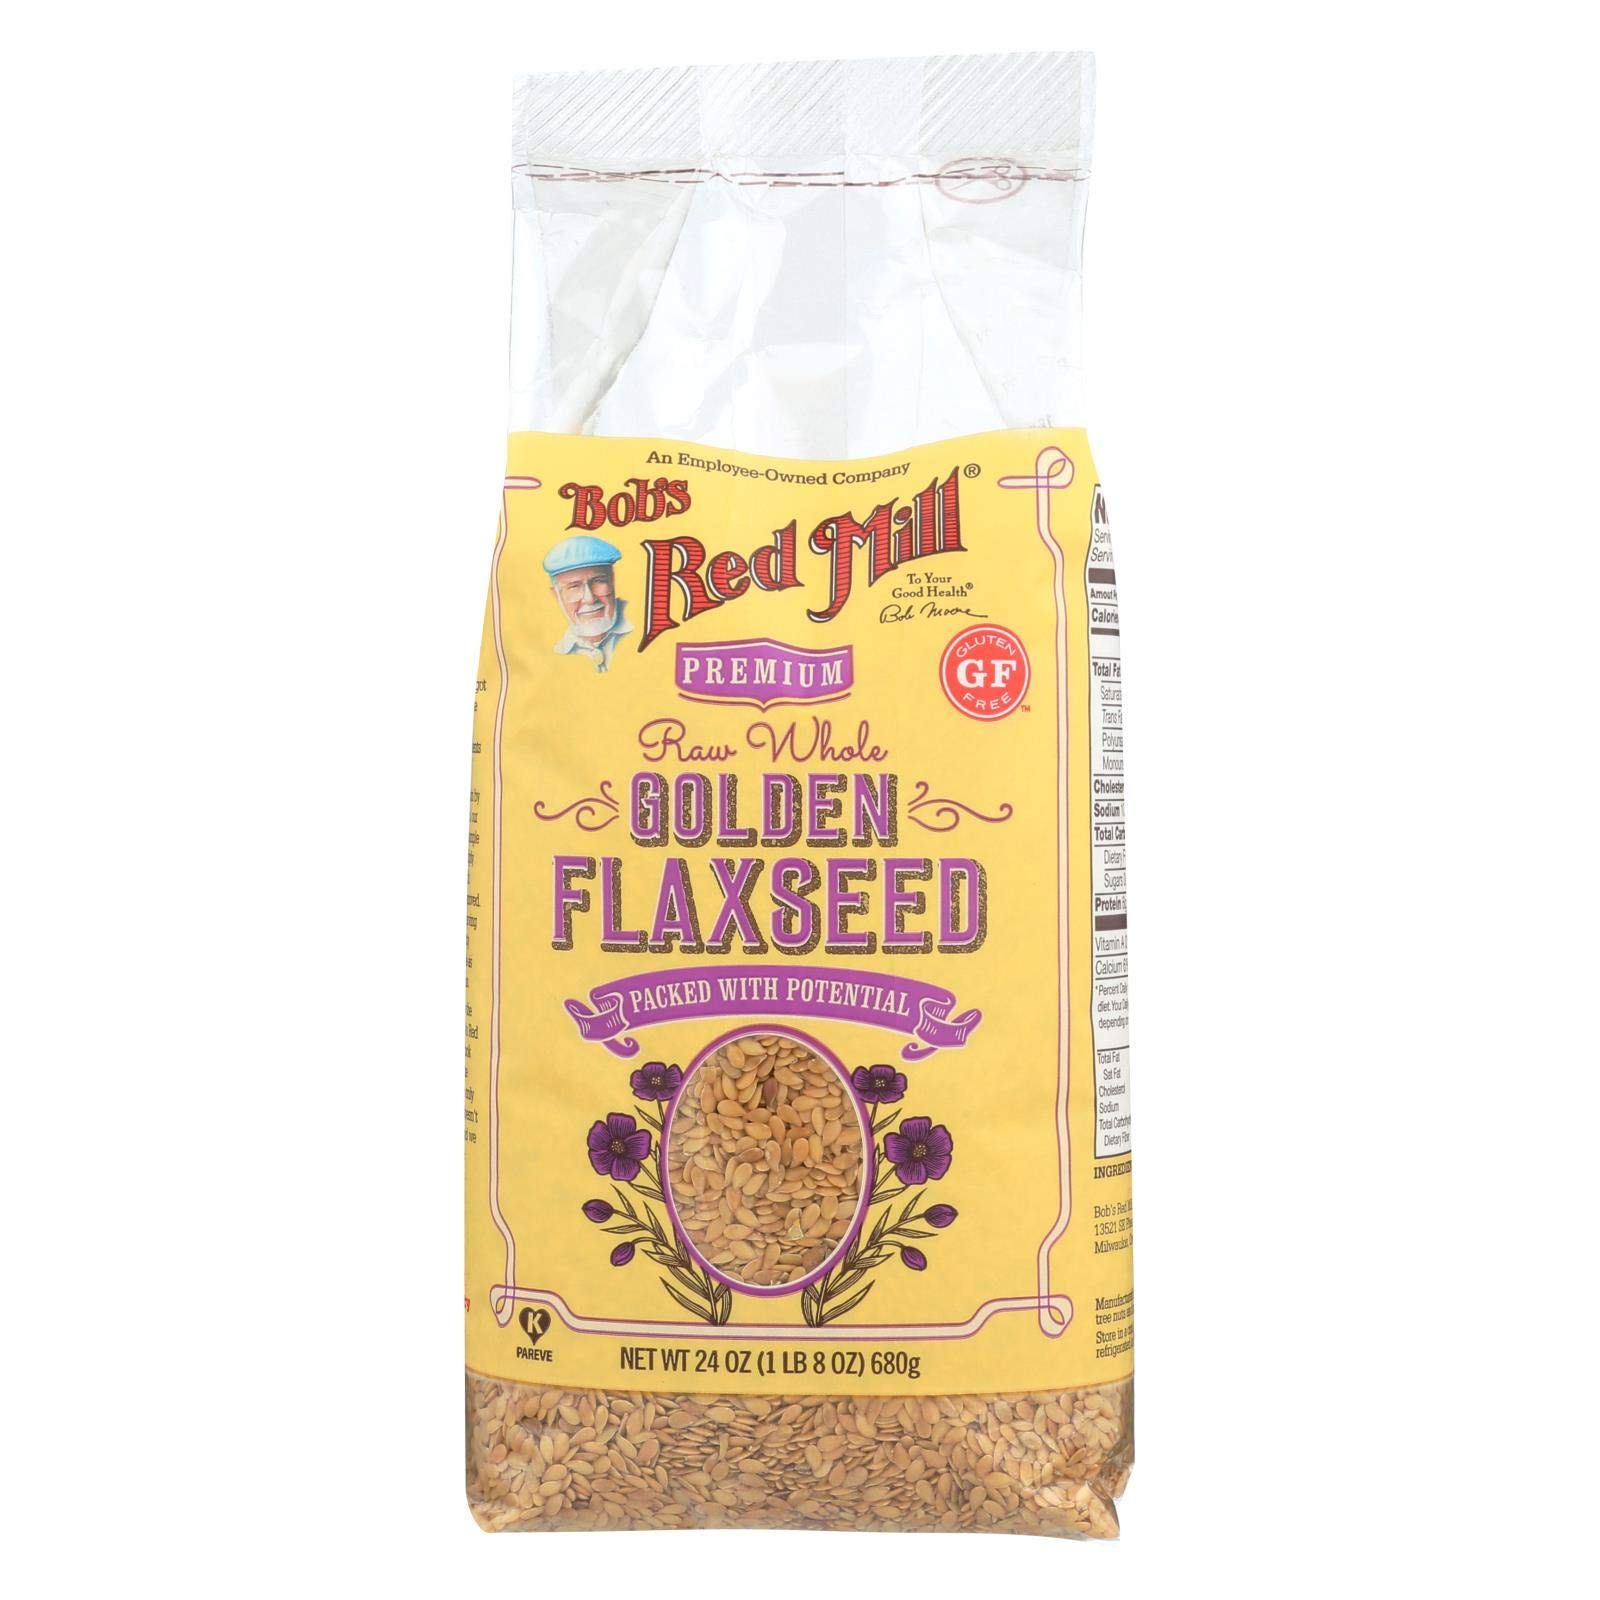 Bob's Red Mill Raw Whole Golden Flaxseed - 24 oz - Case of 4